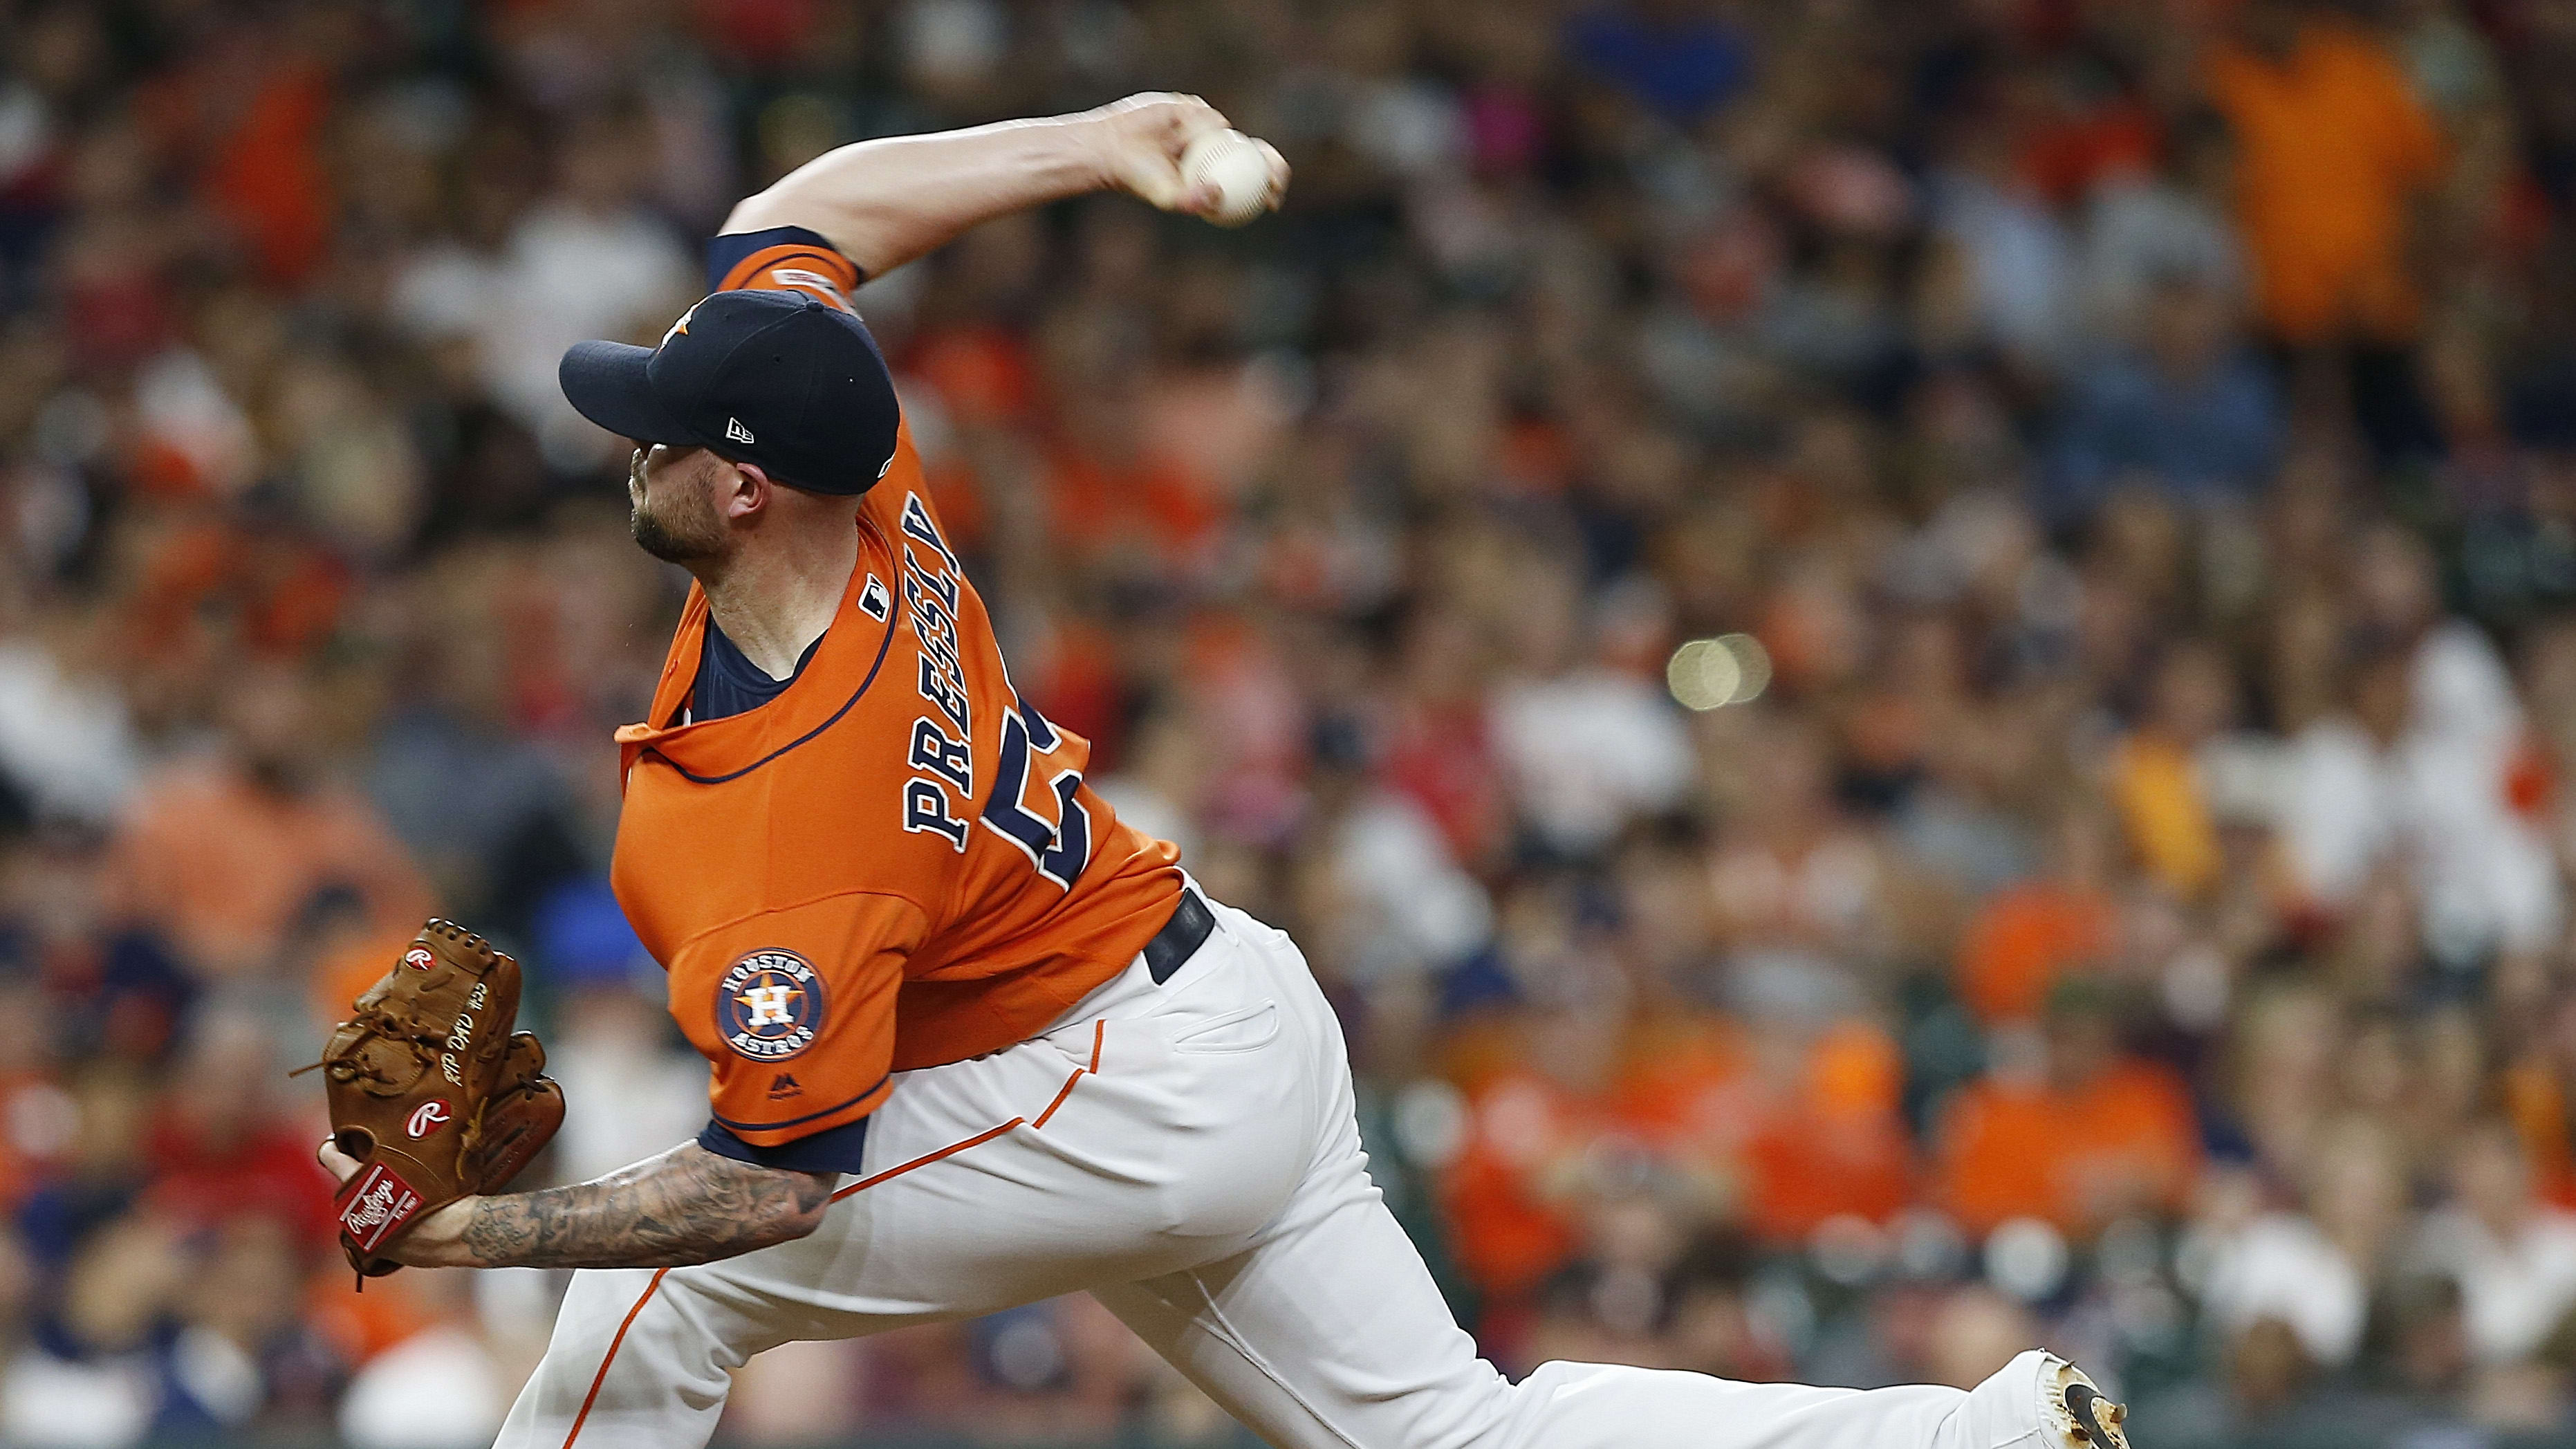 HOUSTON, TEXAS - MAY 24: Ryan Pressly #55 of the Houston Astros pitches in the eighth inning  against the Boston Red Sox at Minute Maid Park on May 24, 2019 in Houston, Texas. (Photo by Bob Levey/Getty Images)